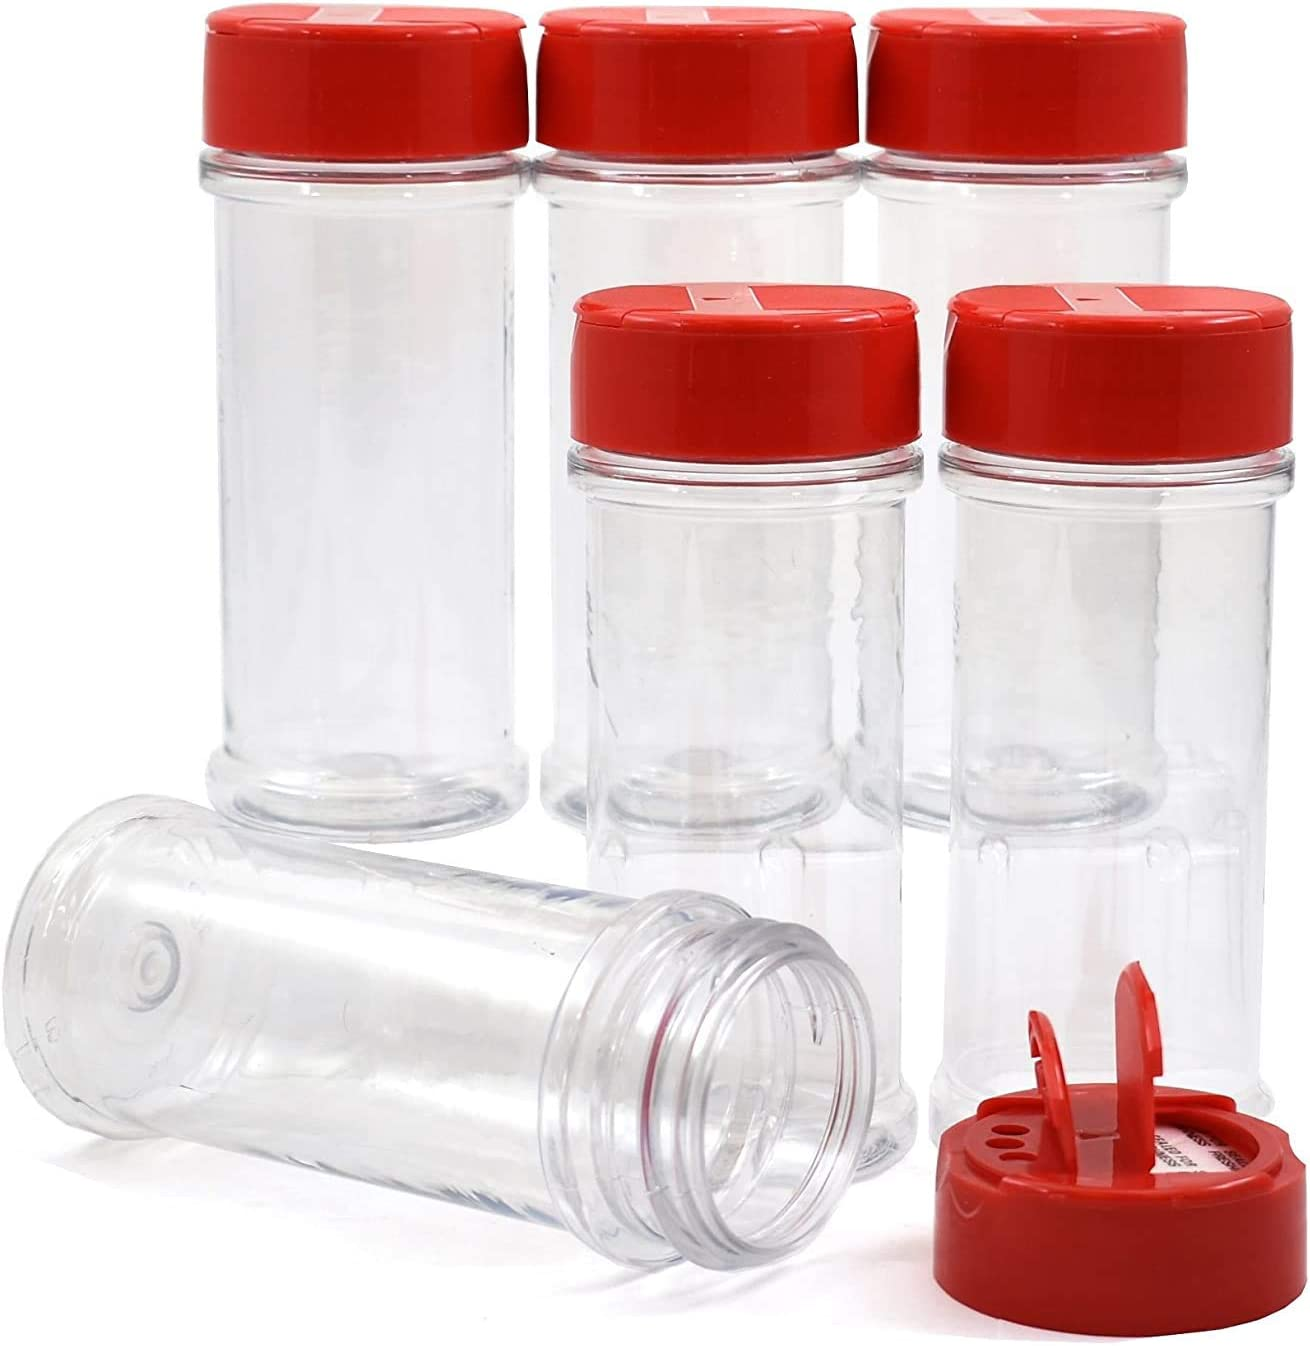 SalusWare - 6 Pack - 5.5 Oz with Red Cap - Plastic Spice Jars Bottles Containers � Perfect for Storing Spice, Herbs and Powders � Lined Cap - Safe Plastic � PET - BPA Free - Made in The USA�